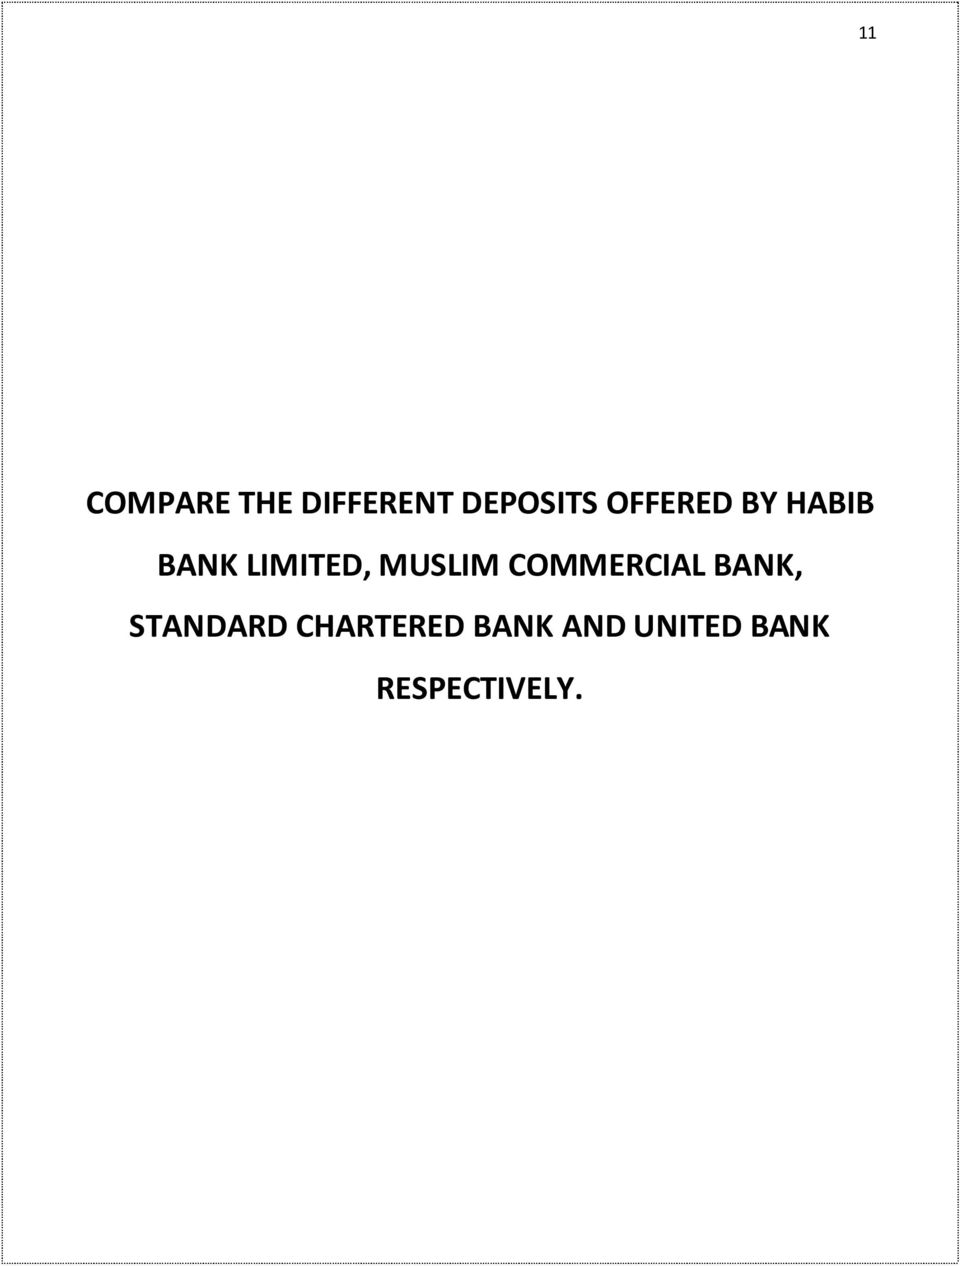 MUSLIM COMMERCIAL BANK, STANDARD